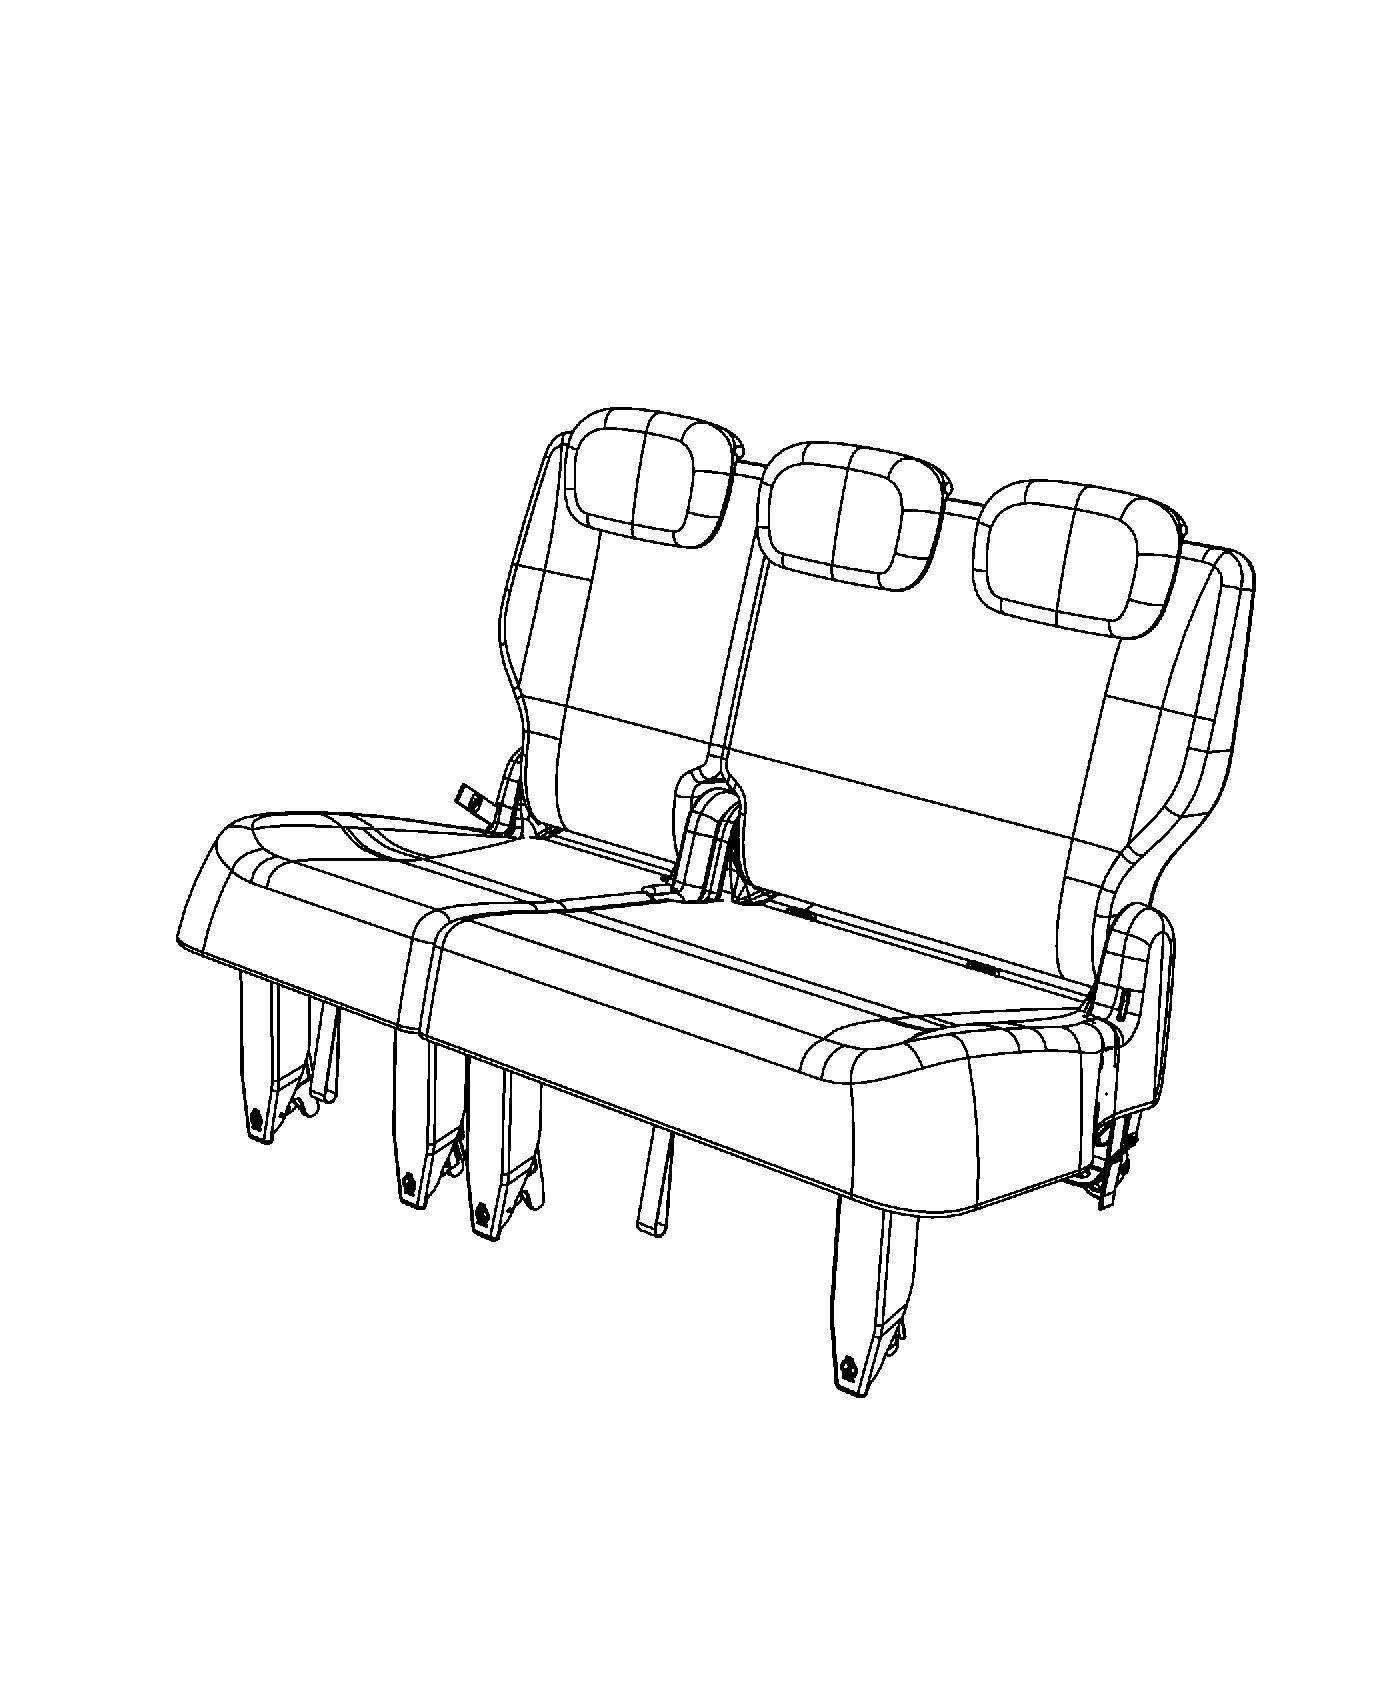 dodge caravan seating diagram